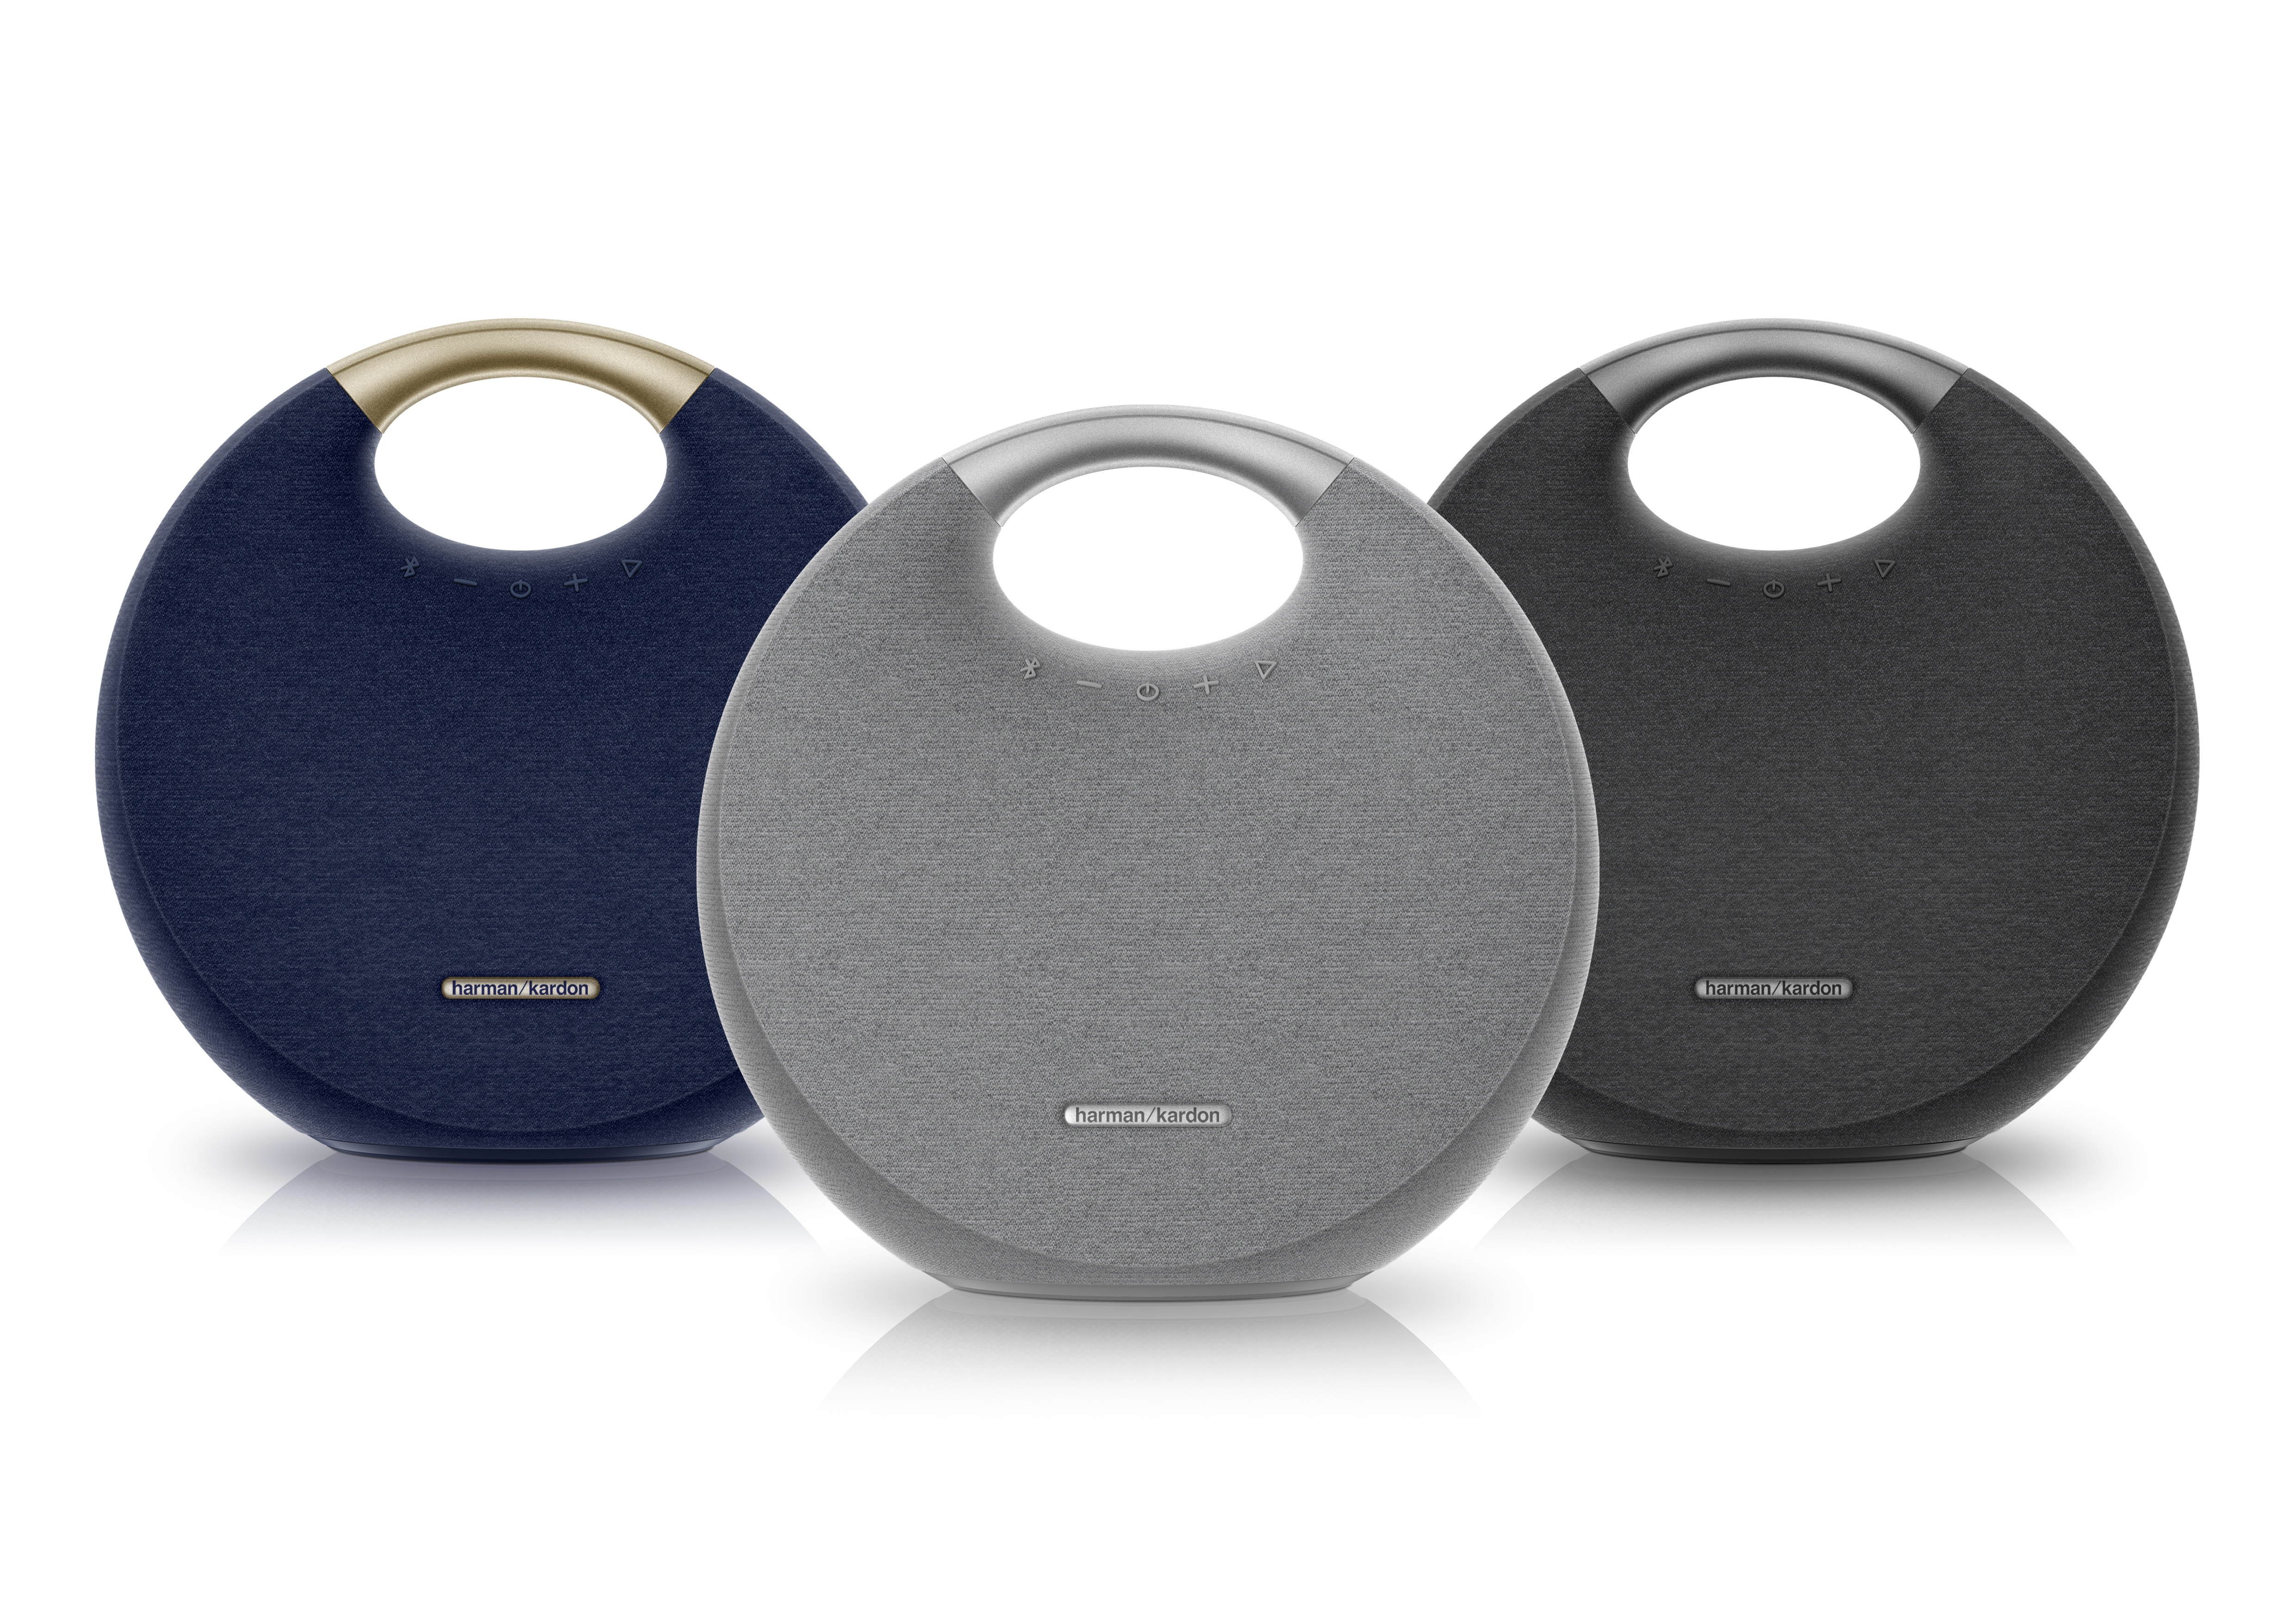 Harman Kardon Unveils The Onyx Studio 5 A Beautiful Wireless Wiring Car Stereo Two Speakers Speaker Featuring Dual Sound Business Wire